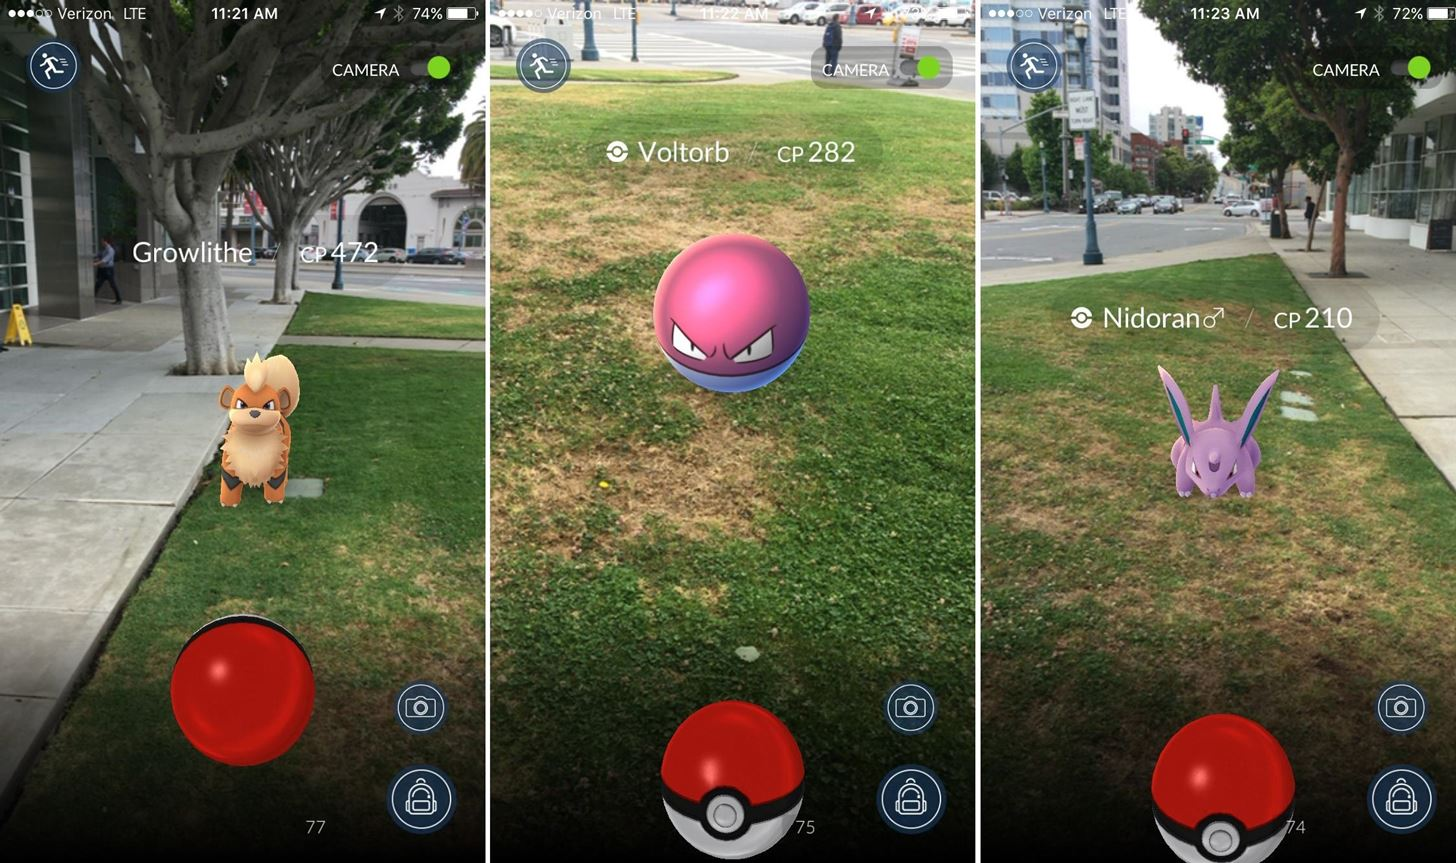 Pokémon Go Significantly Changes the Classic Game, for Better or Worse